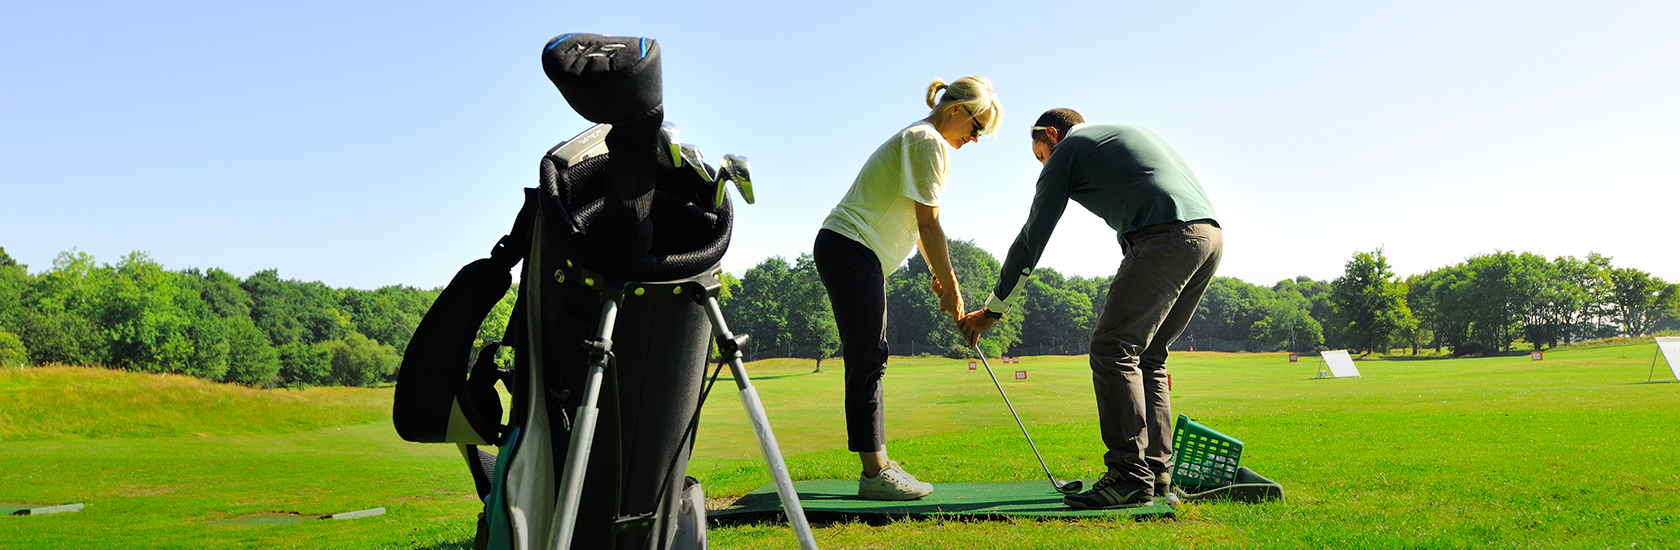 NEOGOLF_Cours individuels_DSC9026